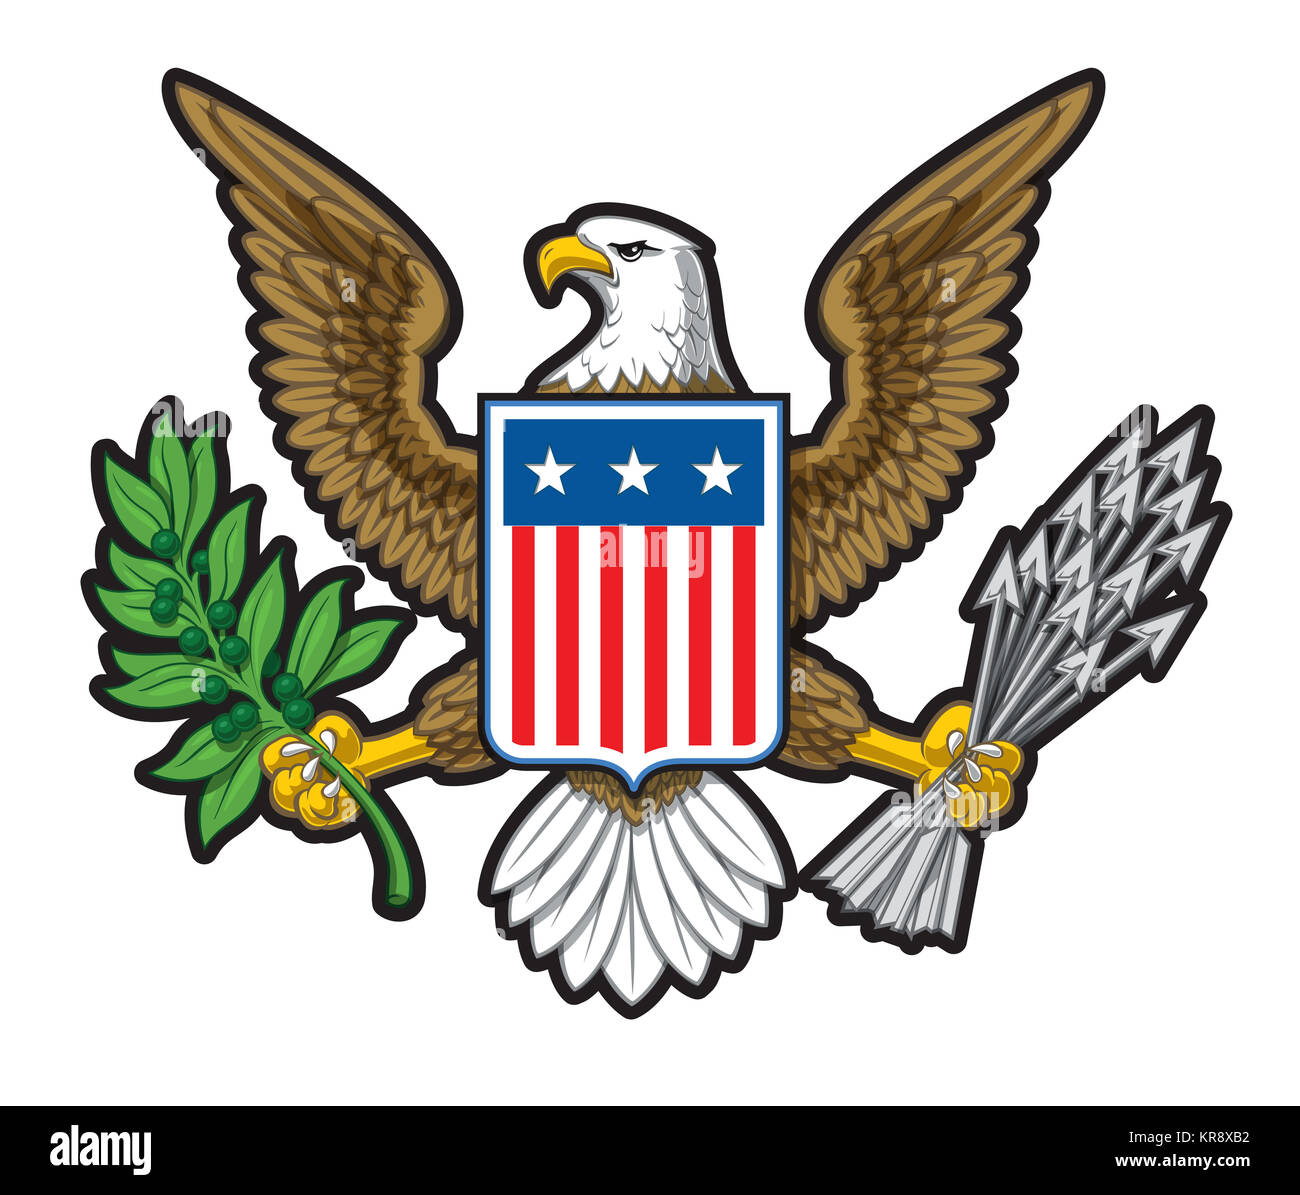 States Presidential Seal Clip Art